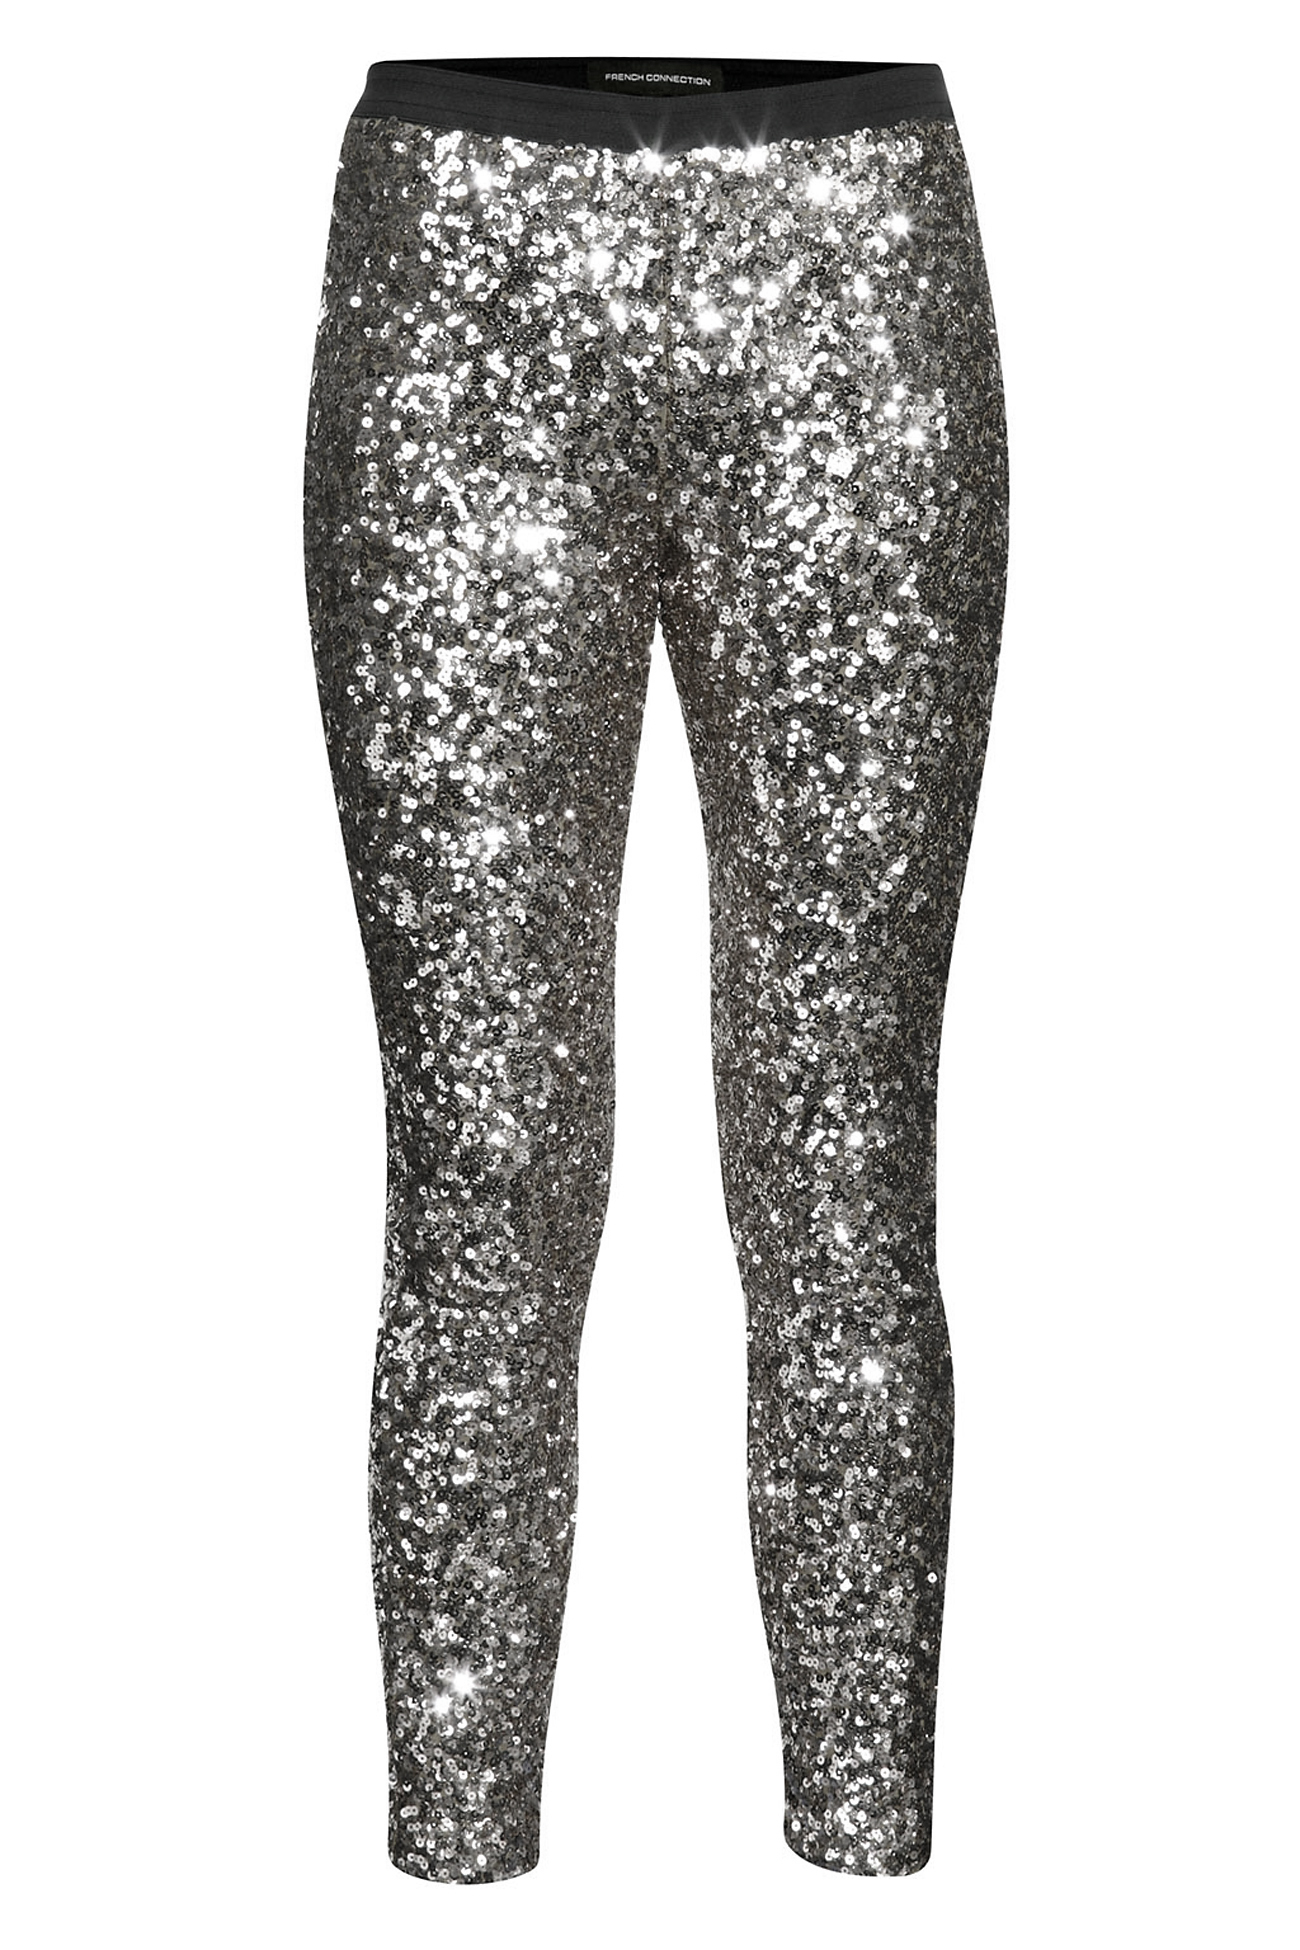 Silver Sparkly Leggings